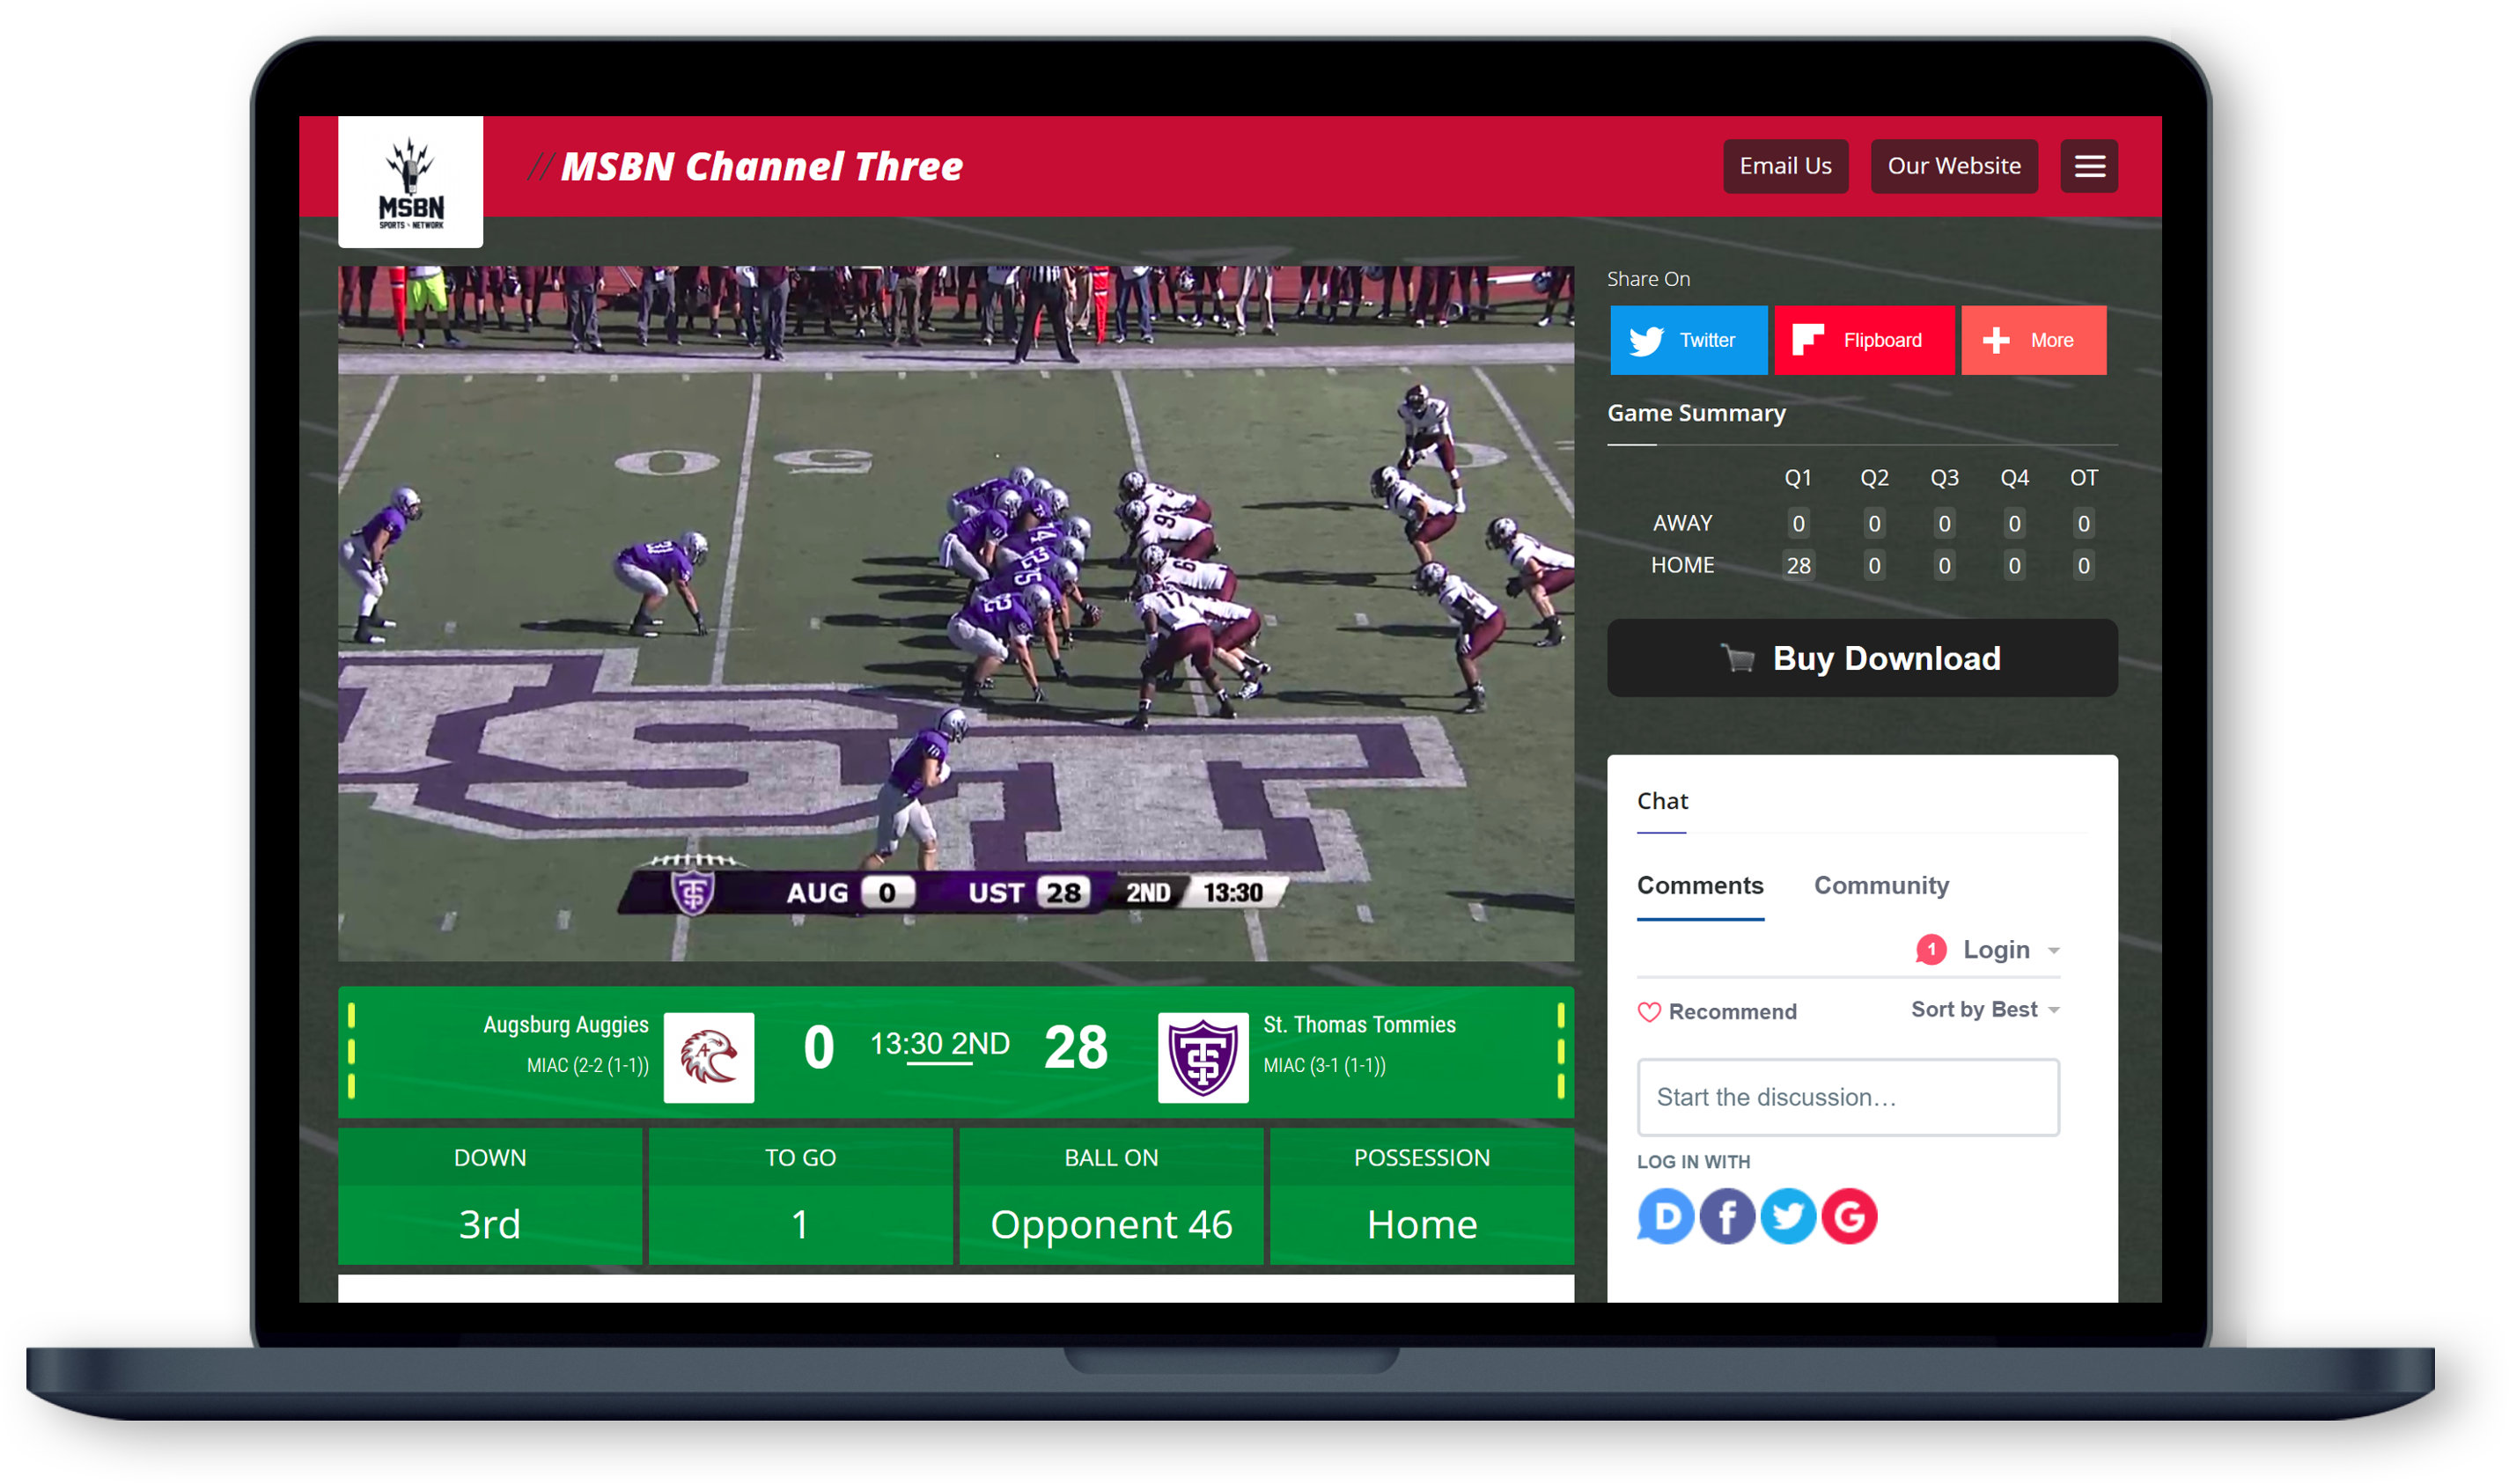 Create Acount Live Score Live Streaming Hd Video Audio Platform For Sports Meridix